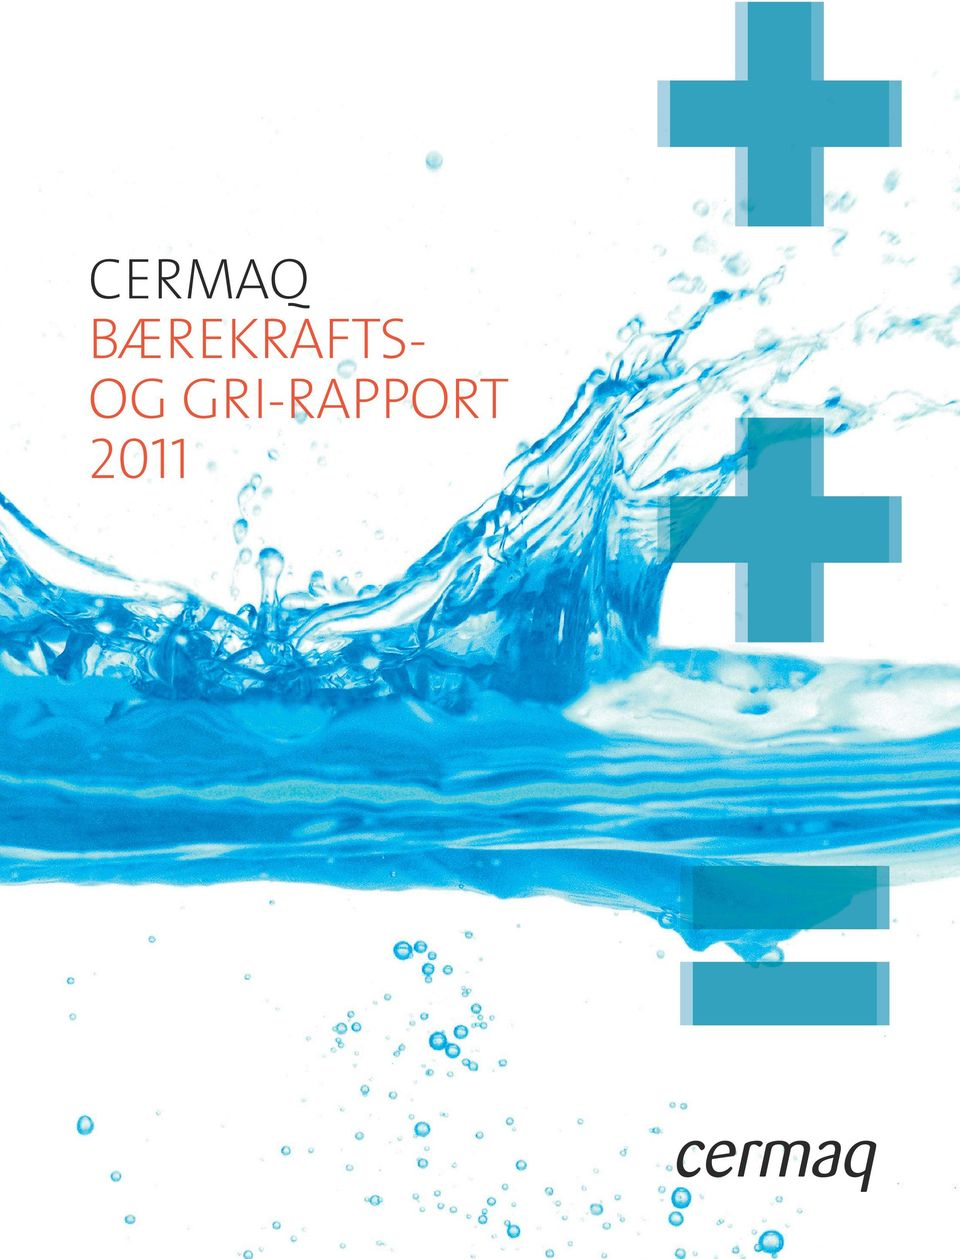 CERMAQ GROUP AS